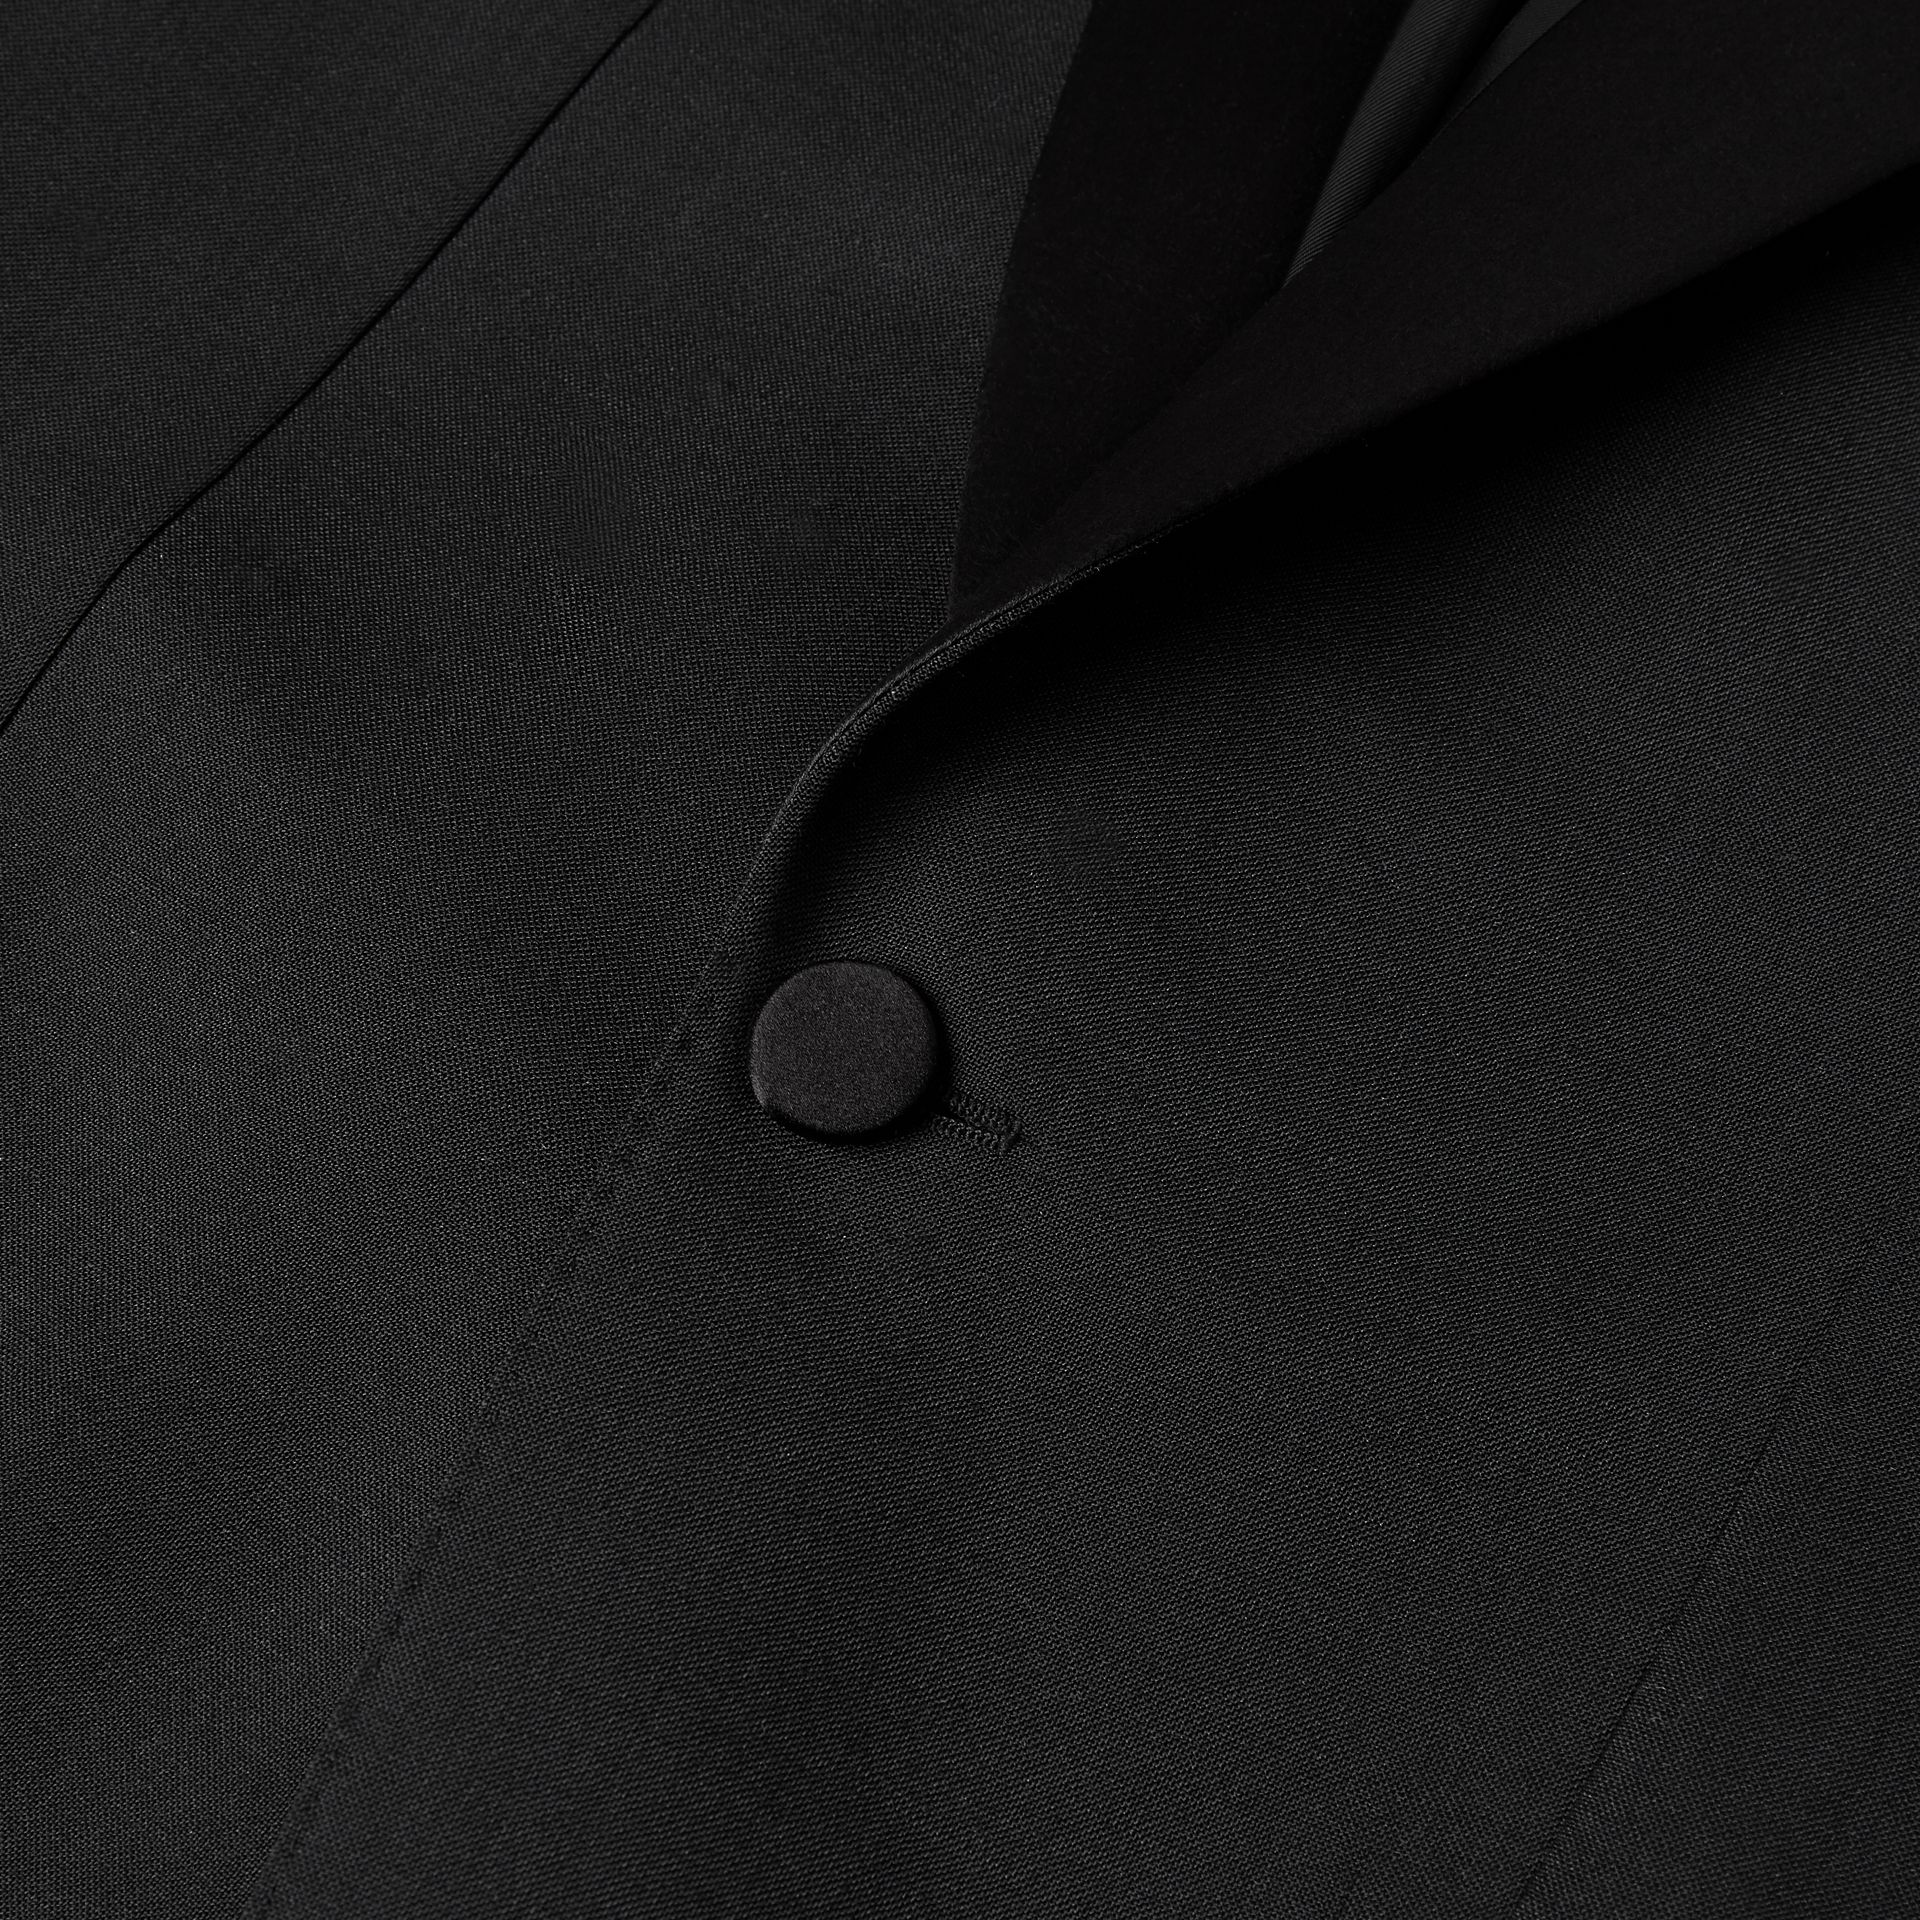 English Fit Mohair Wool Tuxedo in Black - Men | Burberry Canada - gallery image 8